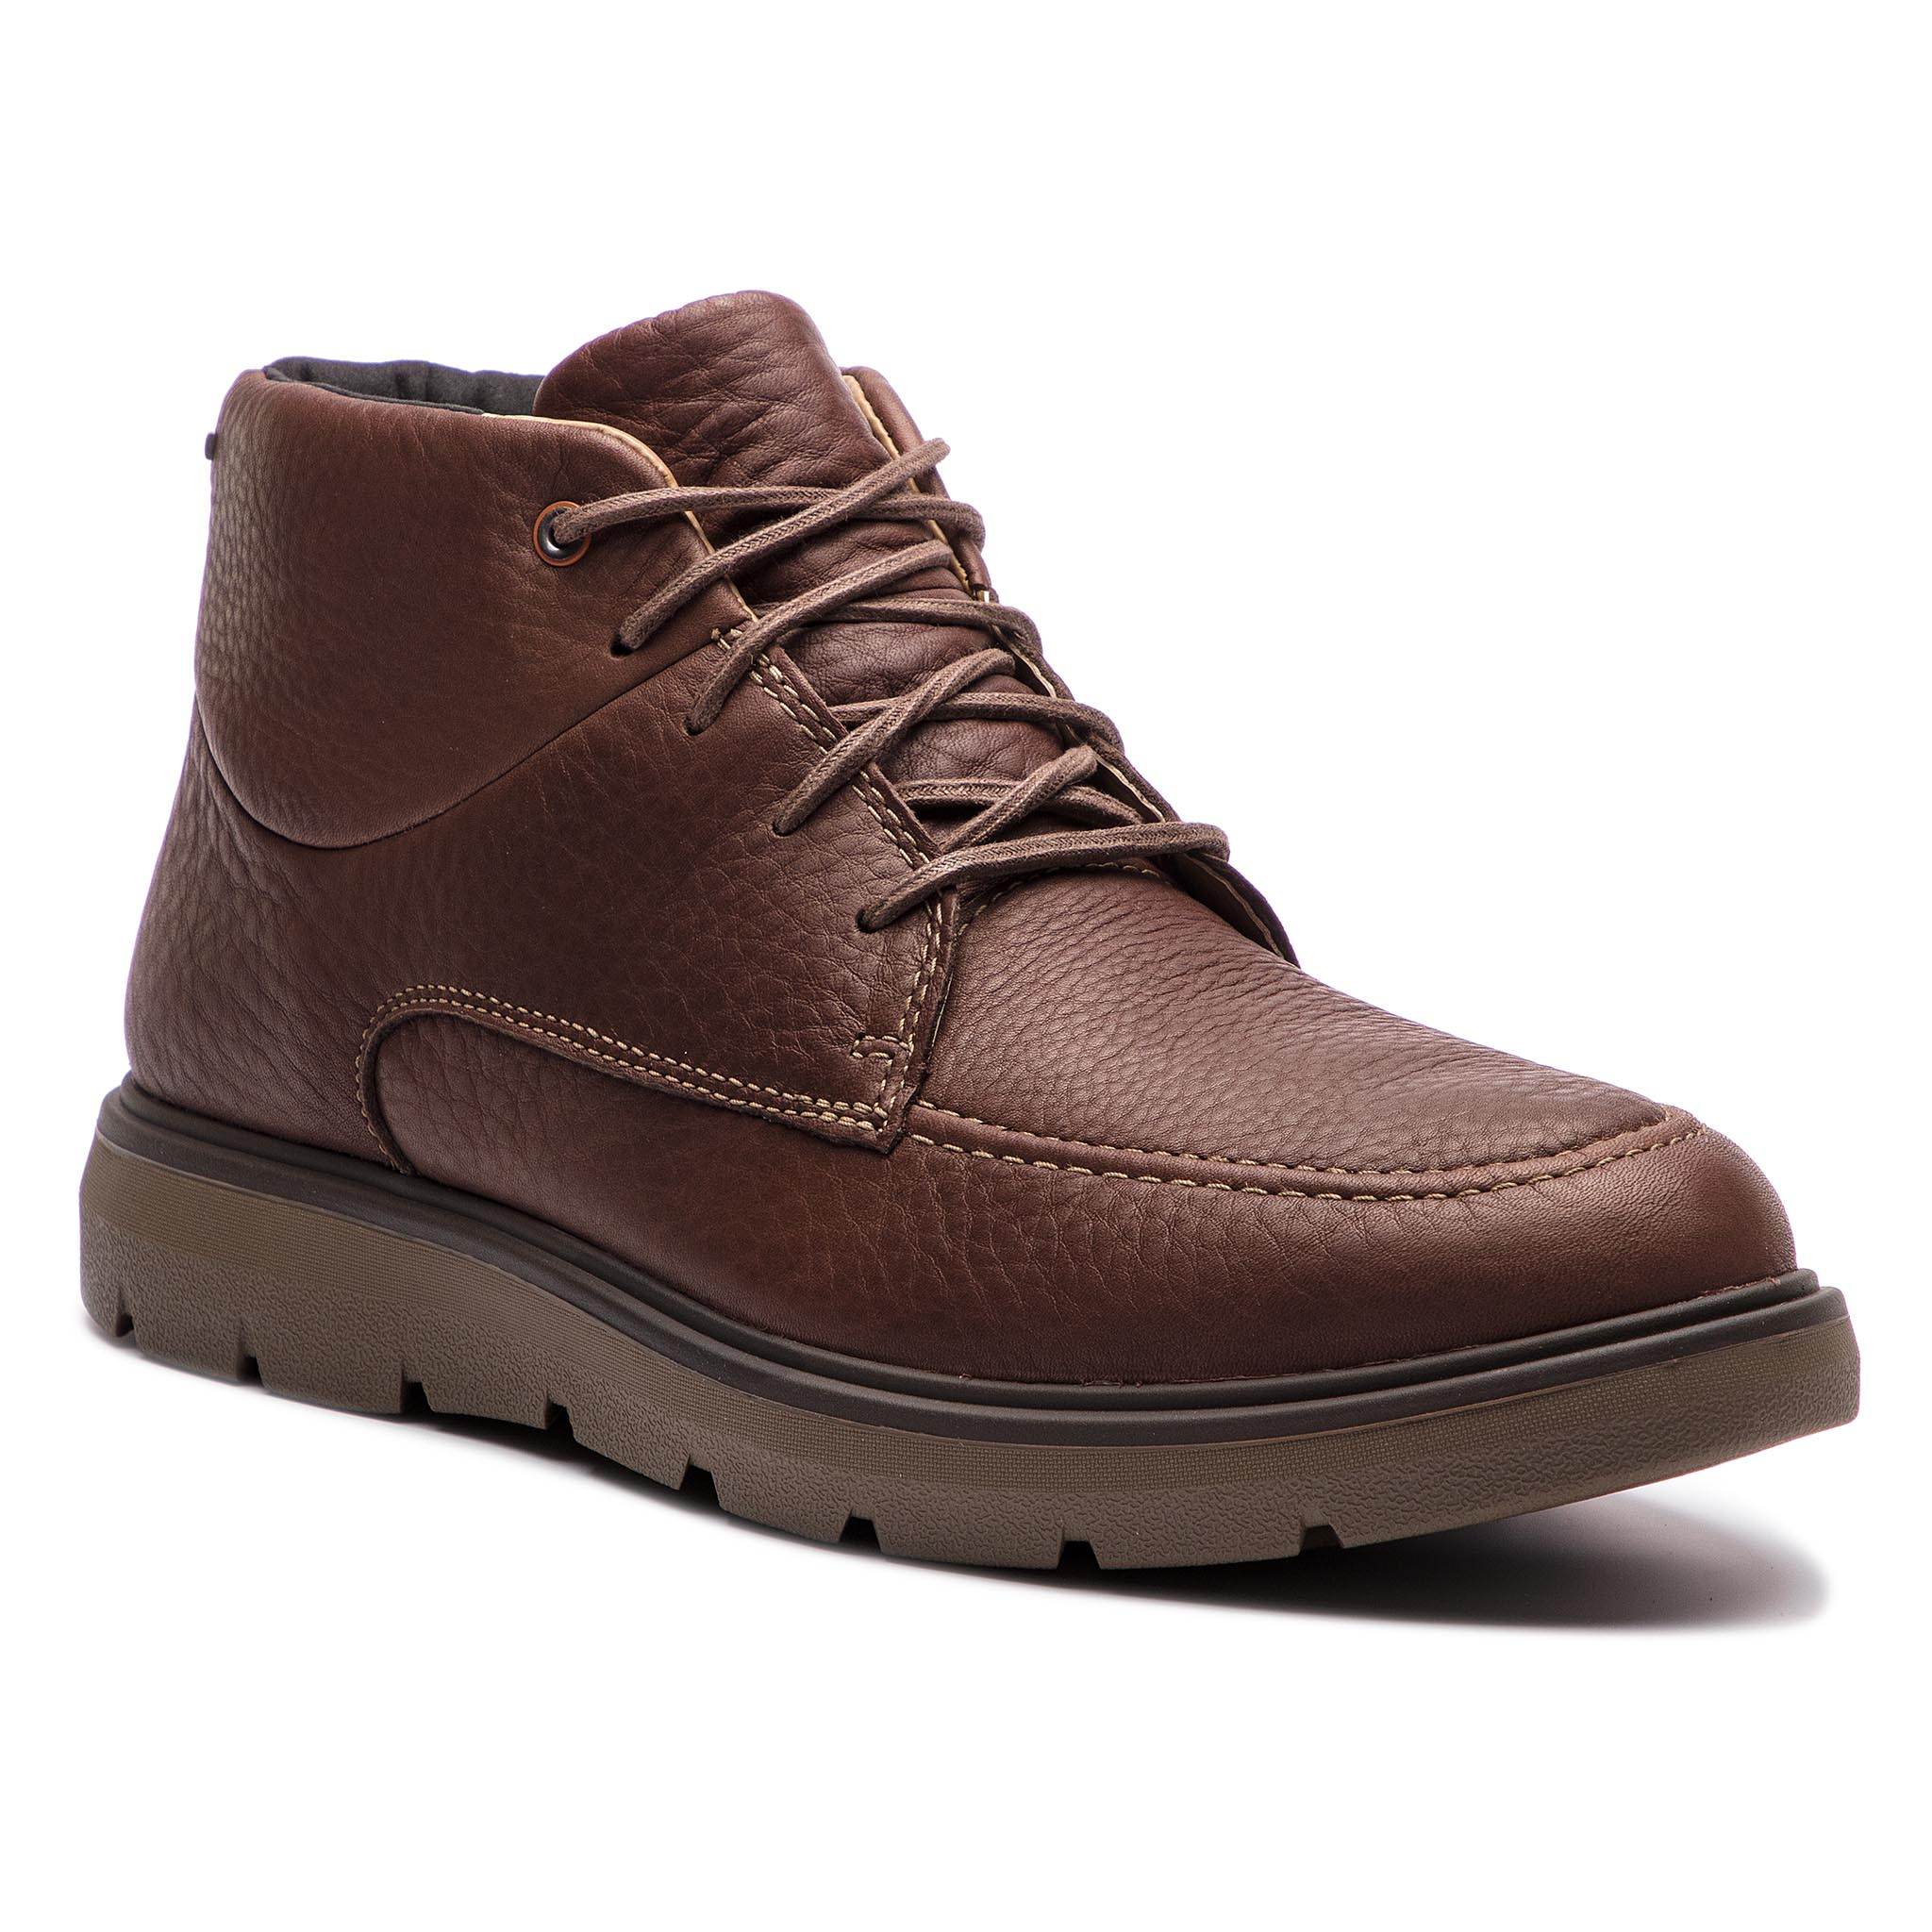 Ghete CLARKS - Un Map Warm Gtx GORE-TEX 261385337 Dark Brown Lea